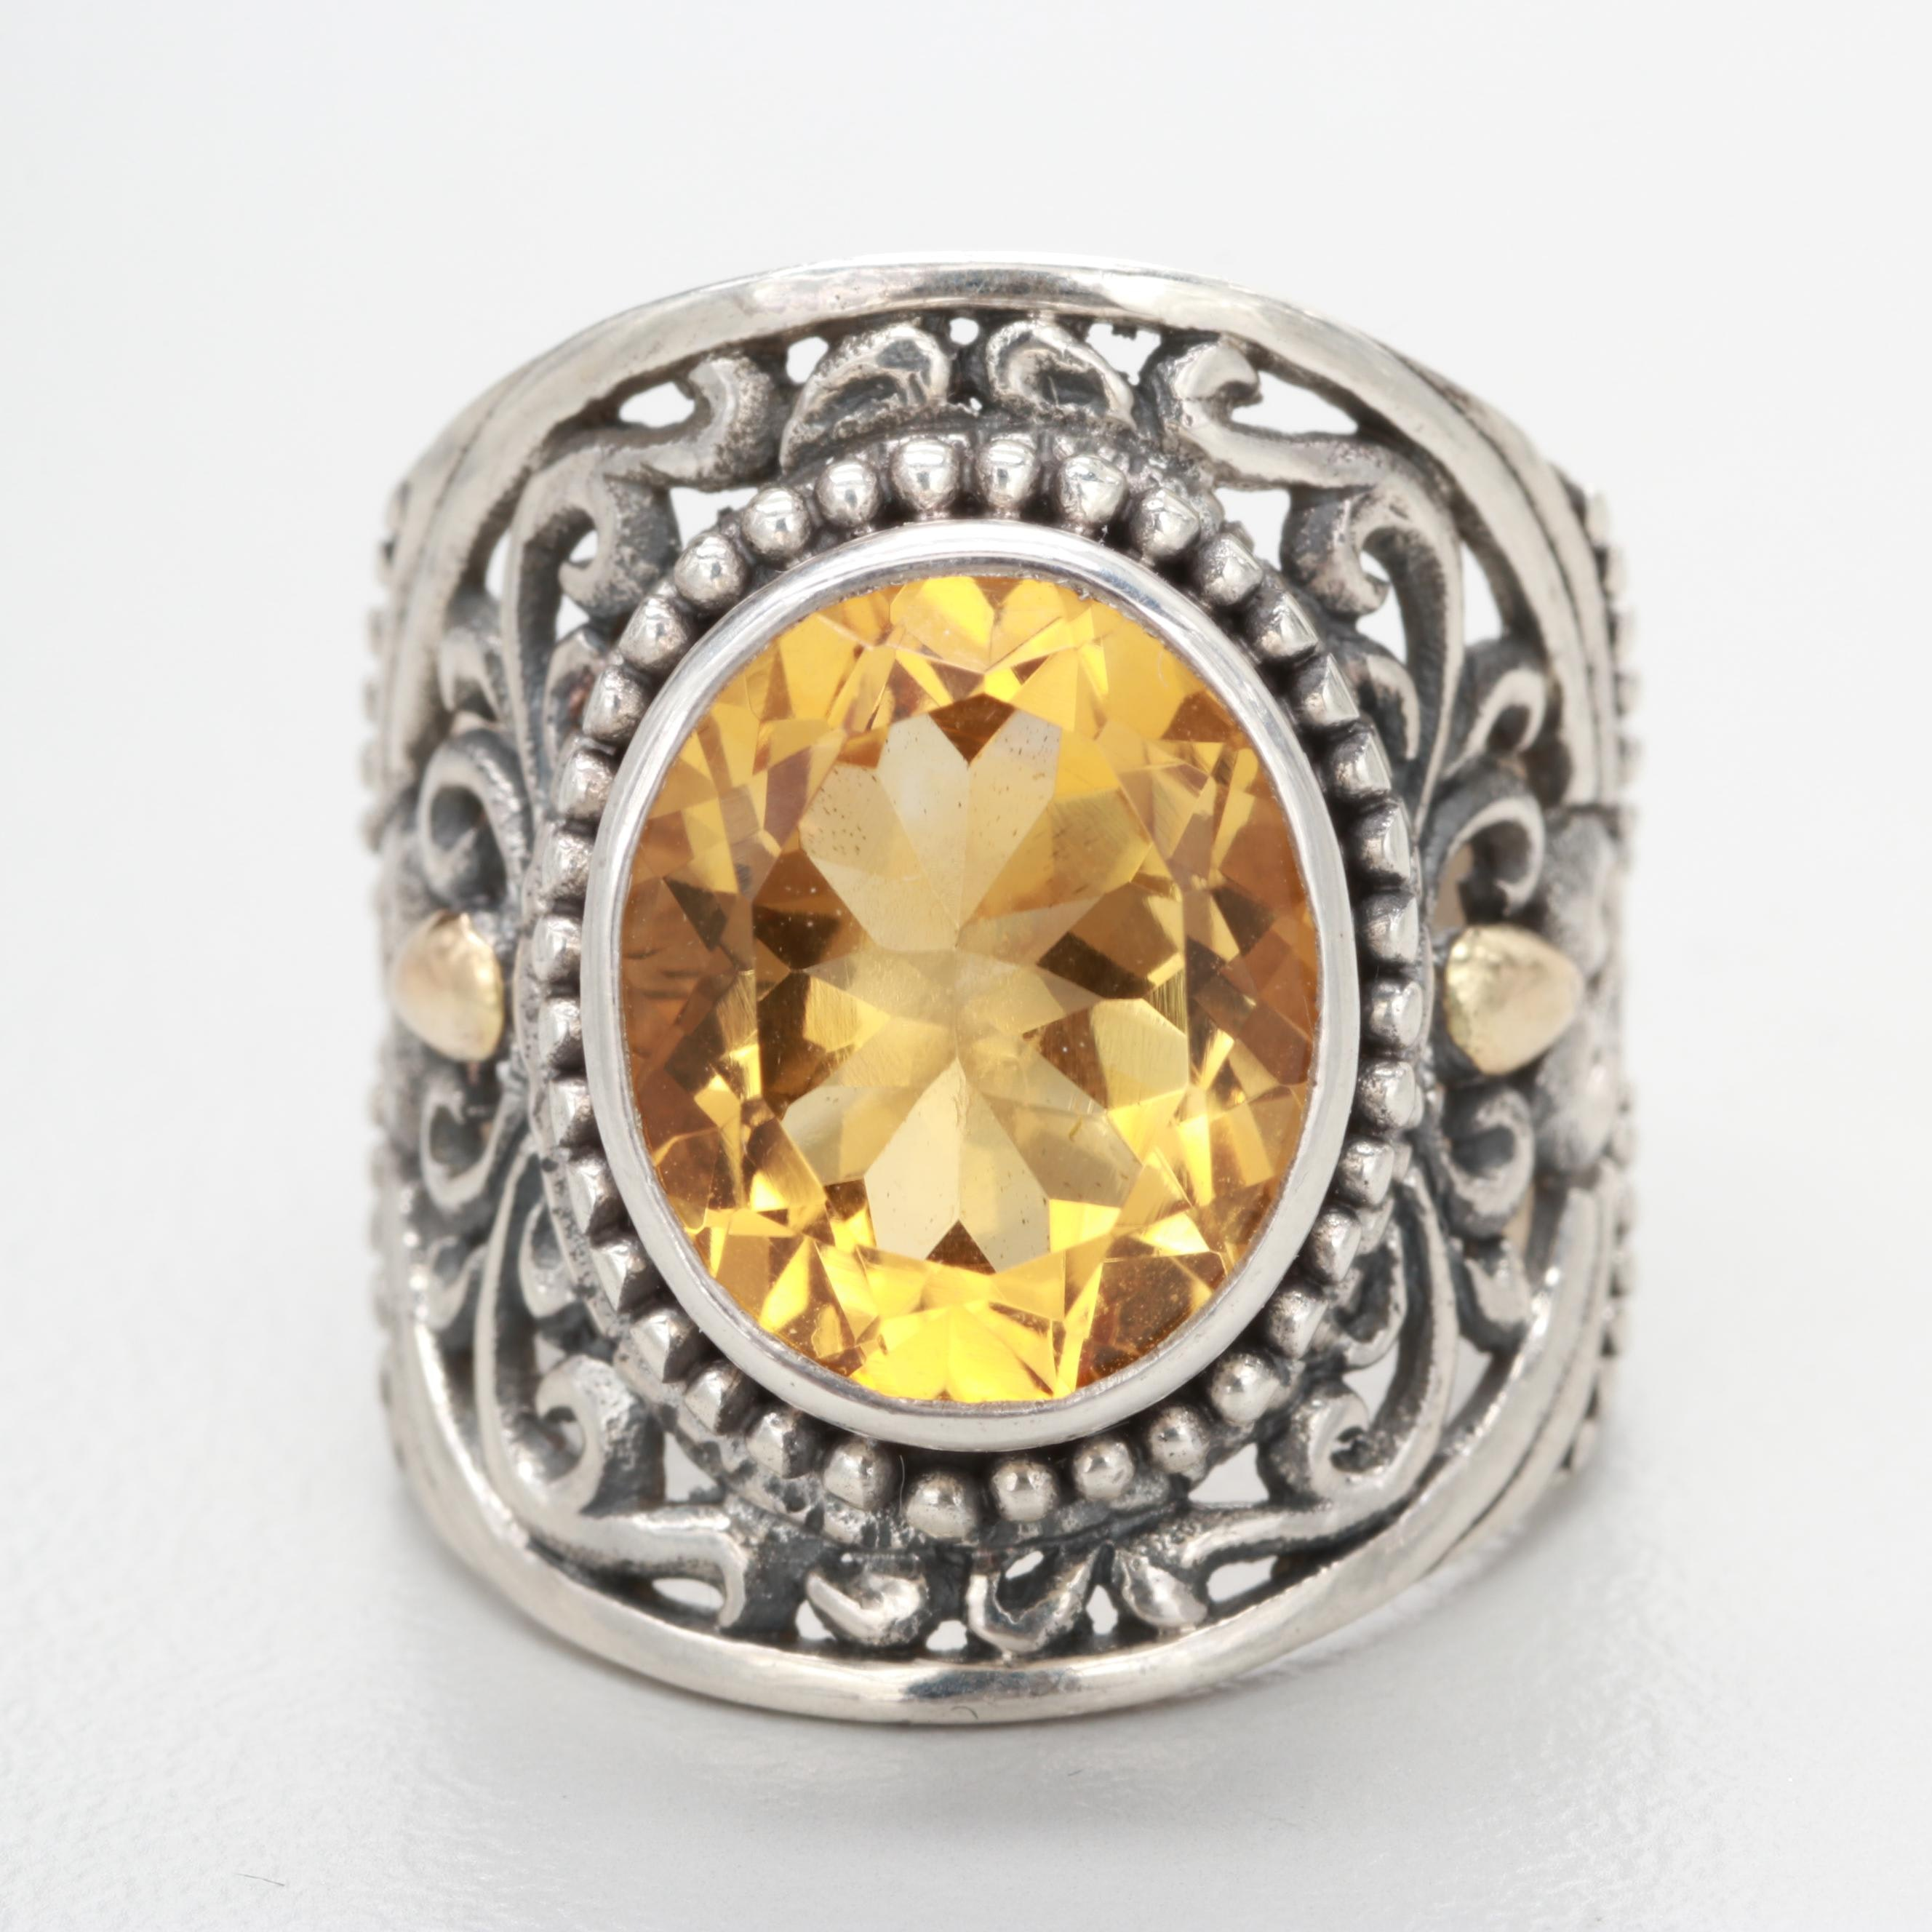 Robert Manse Sterling Silver Citrine Ring with 18K Yellow Gold Accents